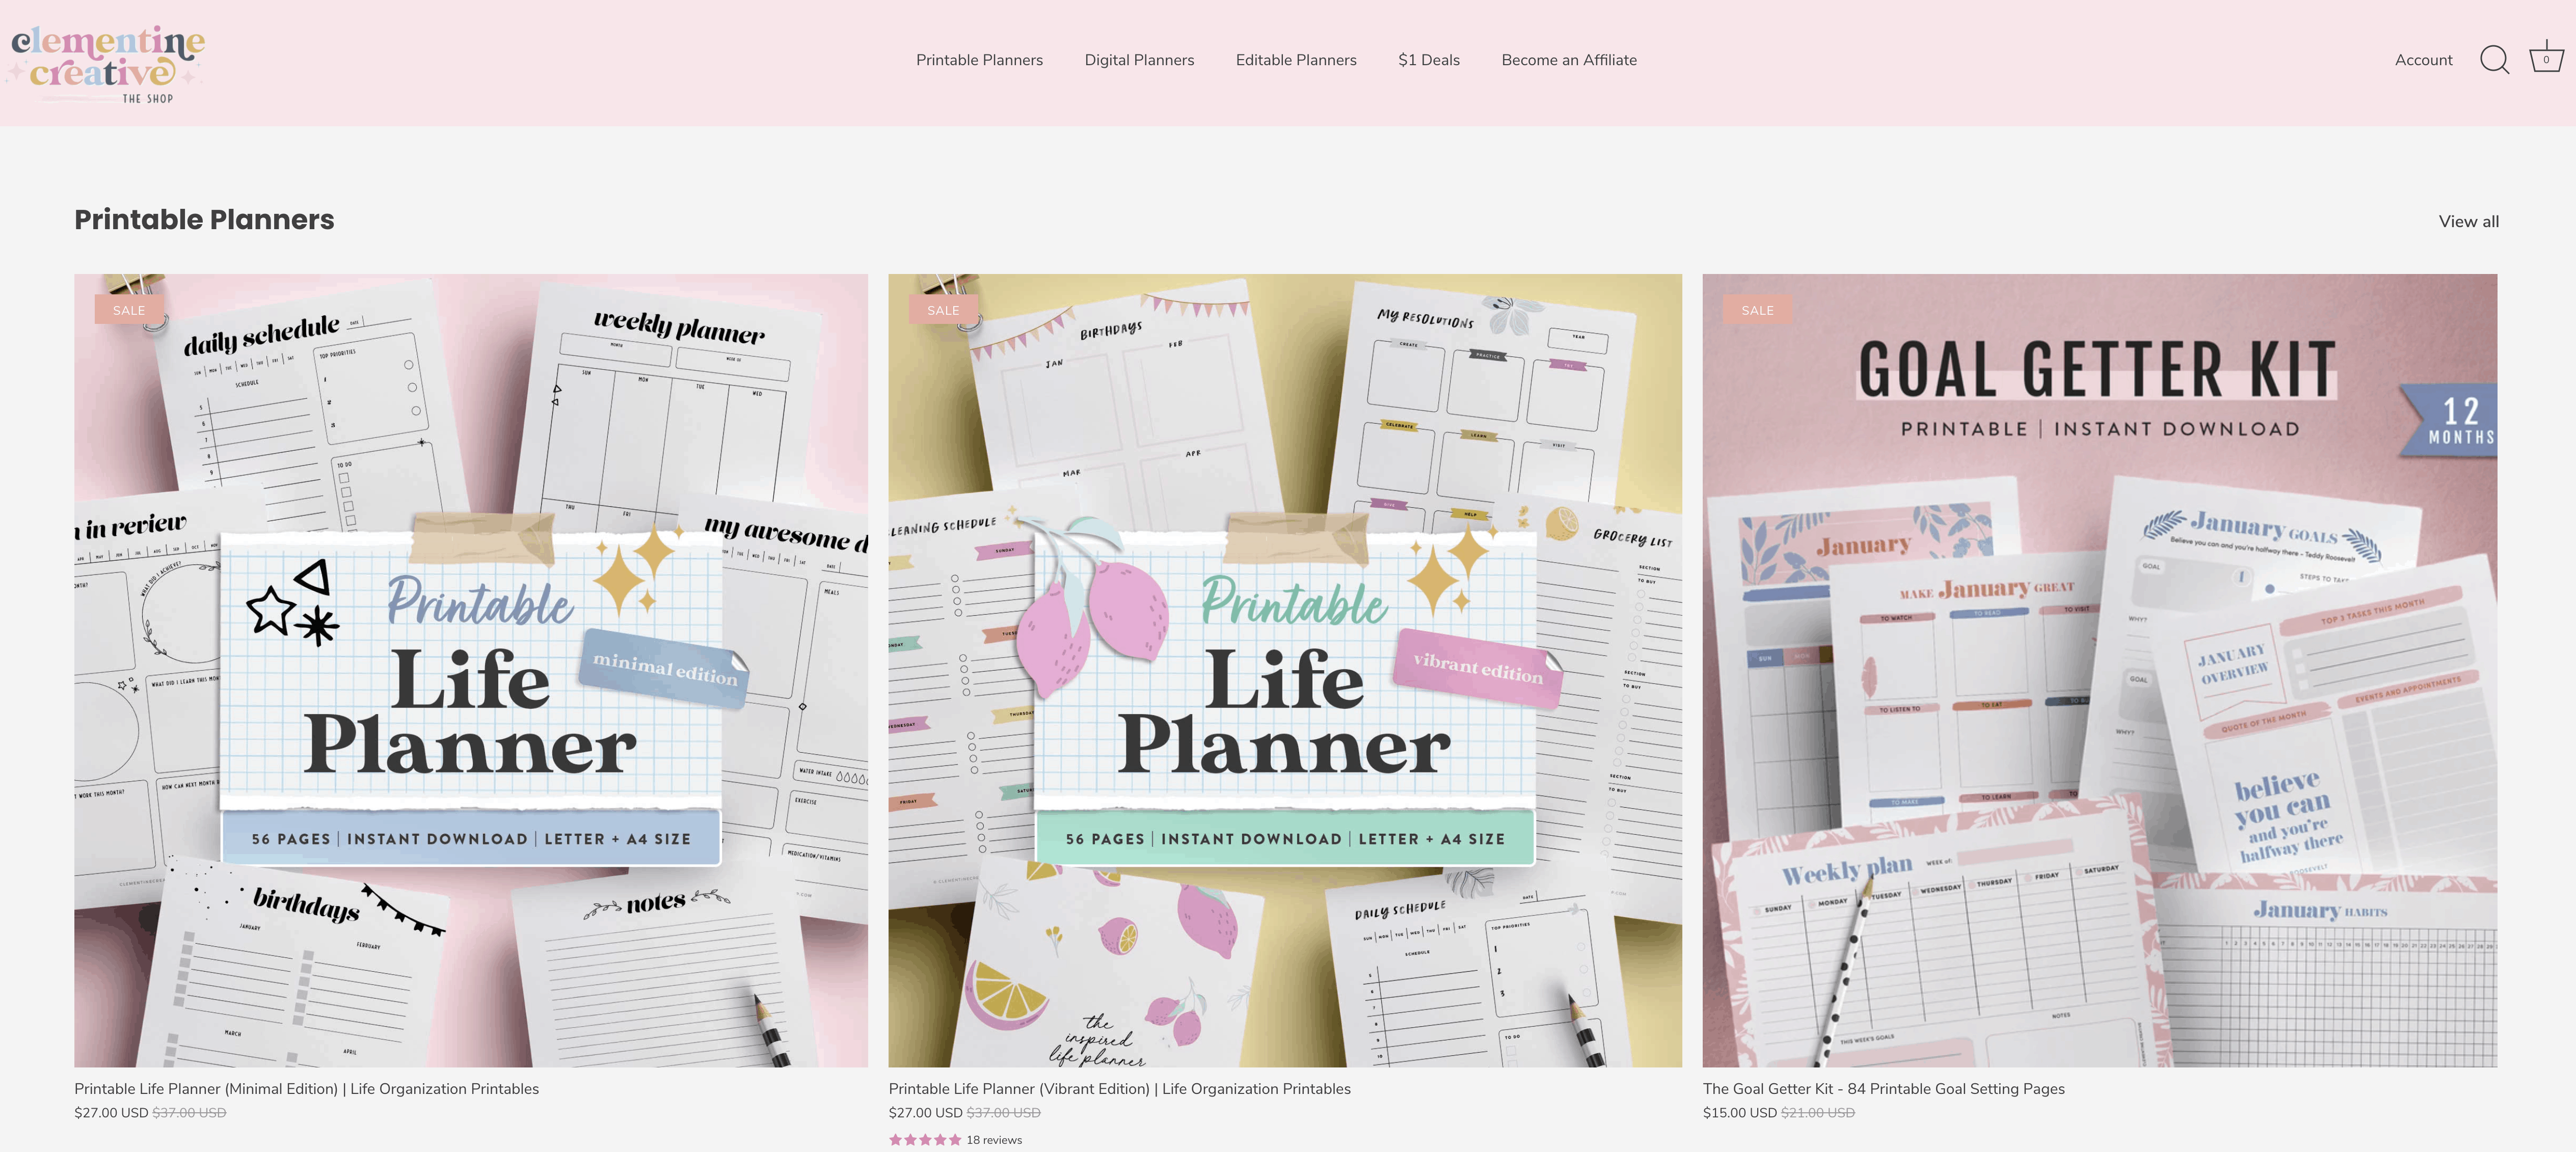 Carmia sells printable planners and digital goods on her own website which she uses as a shop.